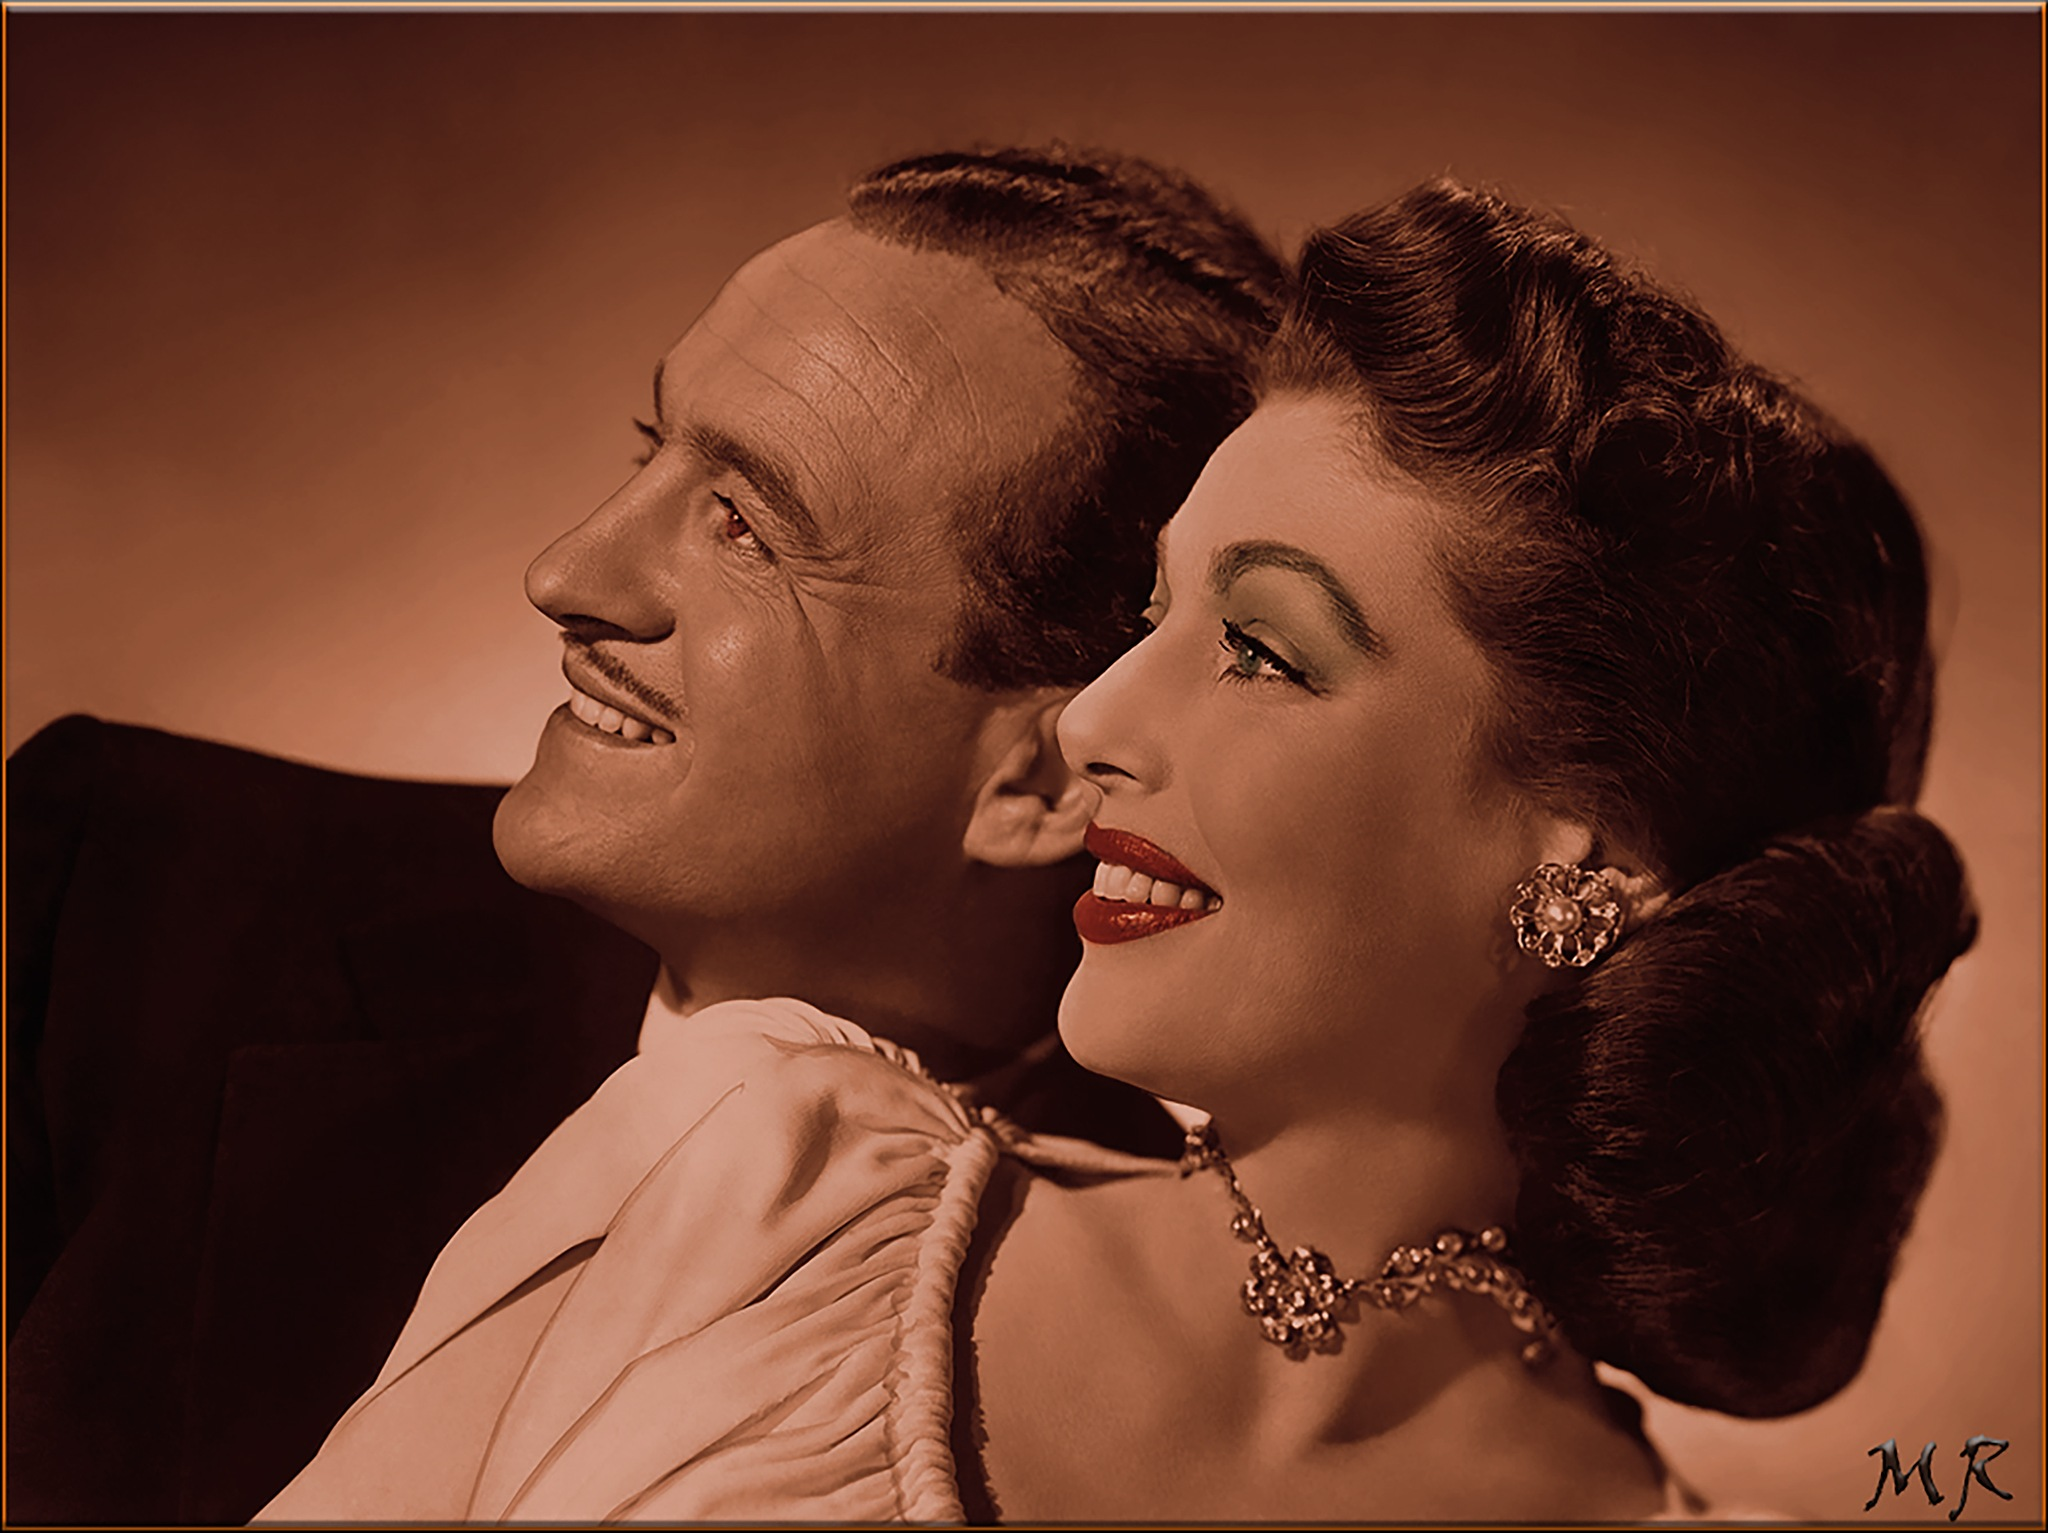 Loretta Young with David Niven by Mikael Rennerhorn